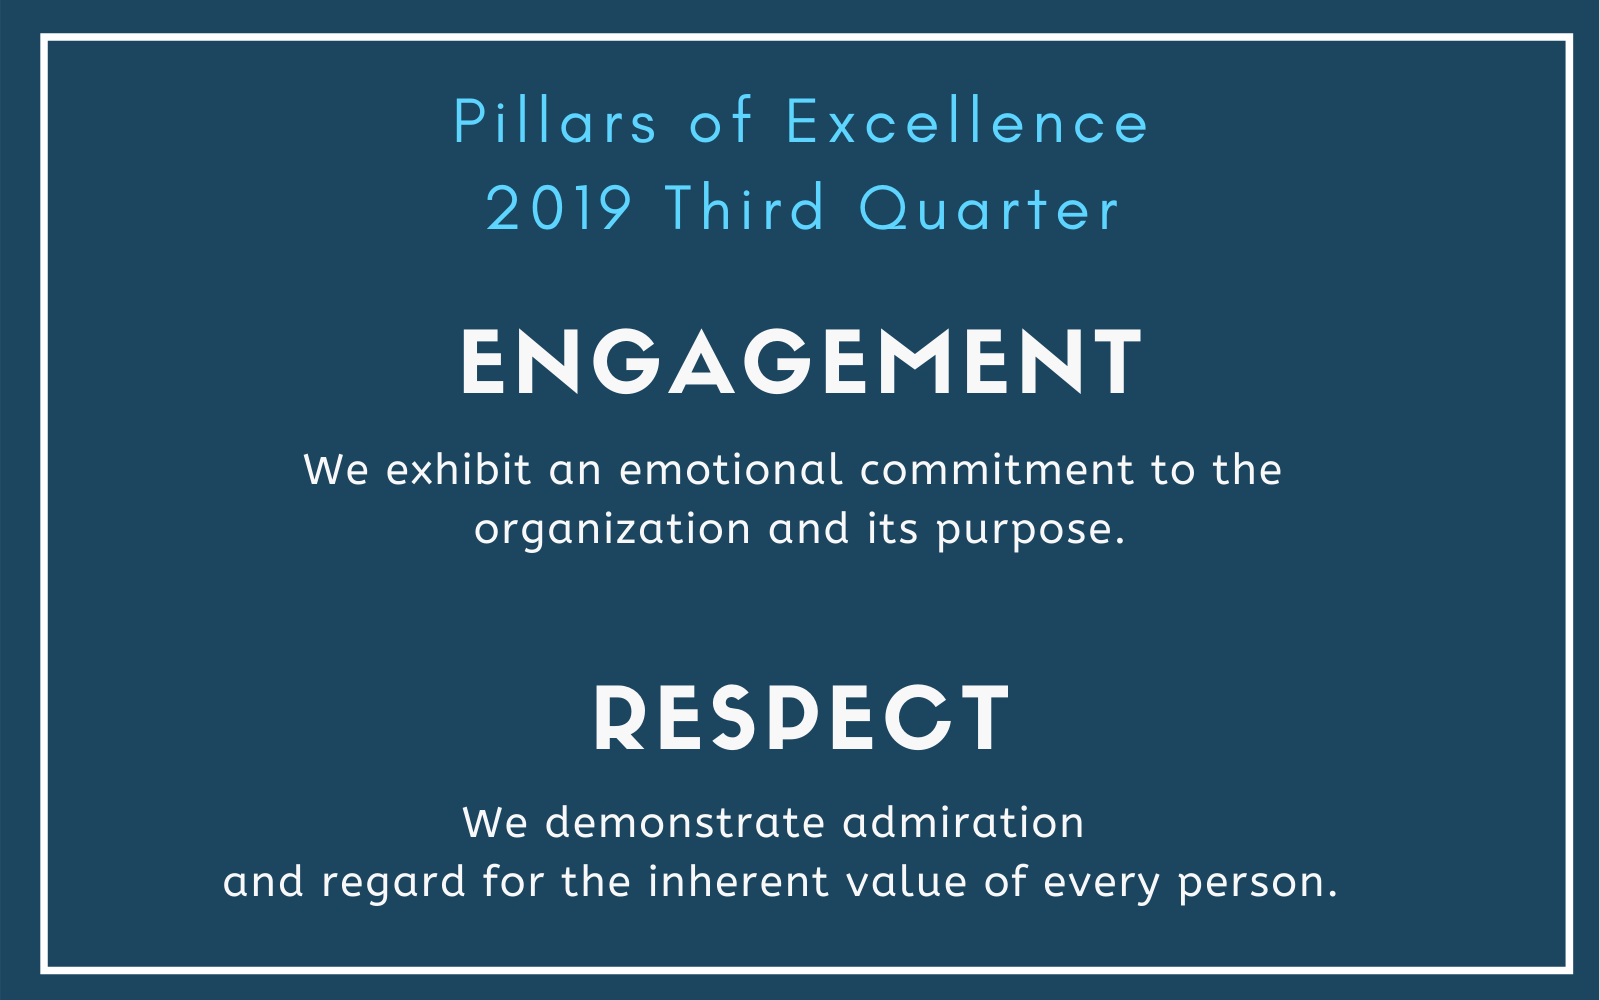 NALS Pillars of Excellence Third Quarter